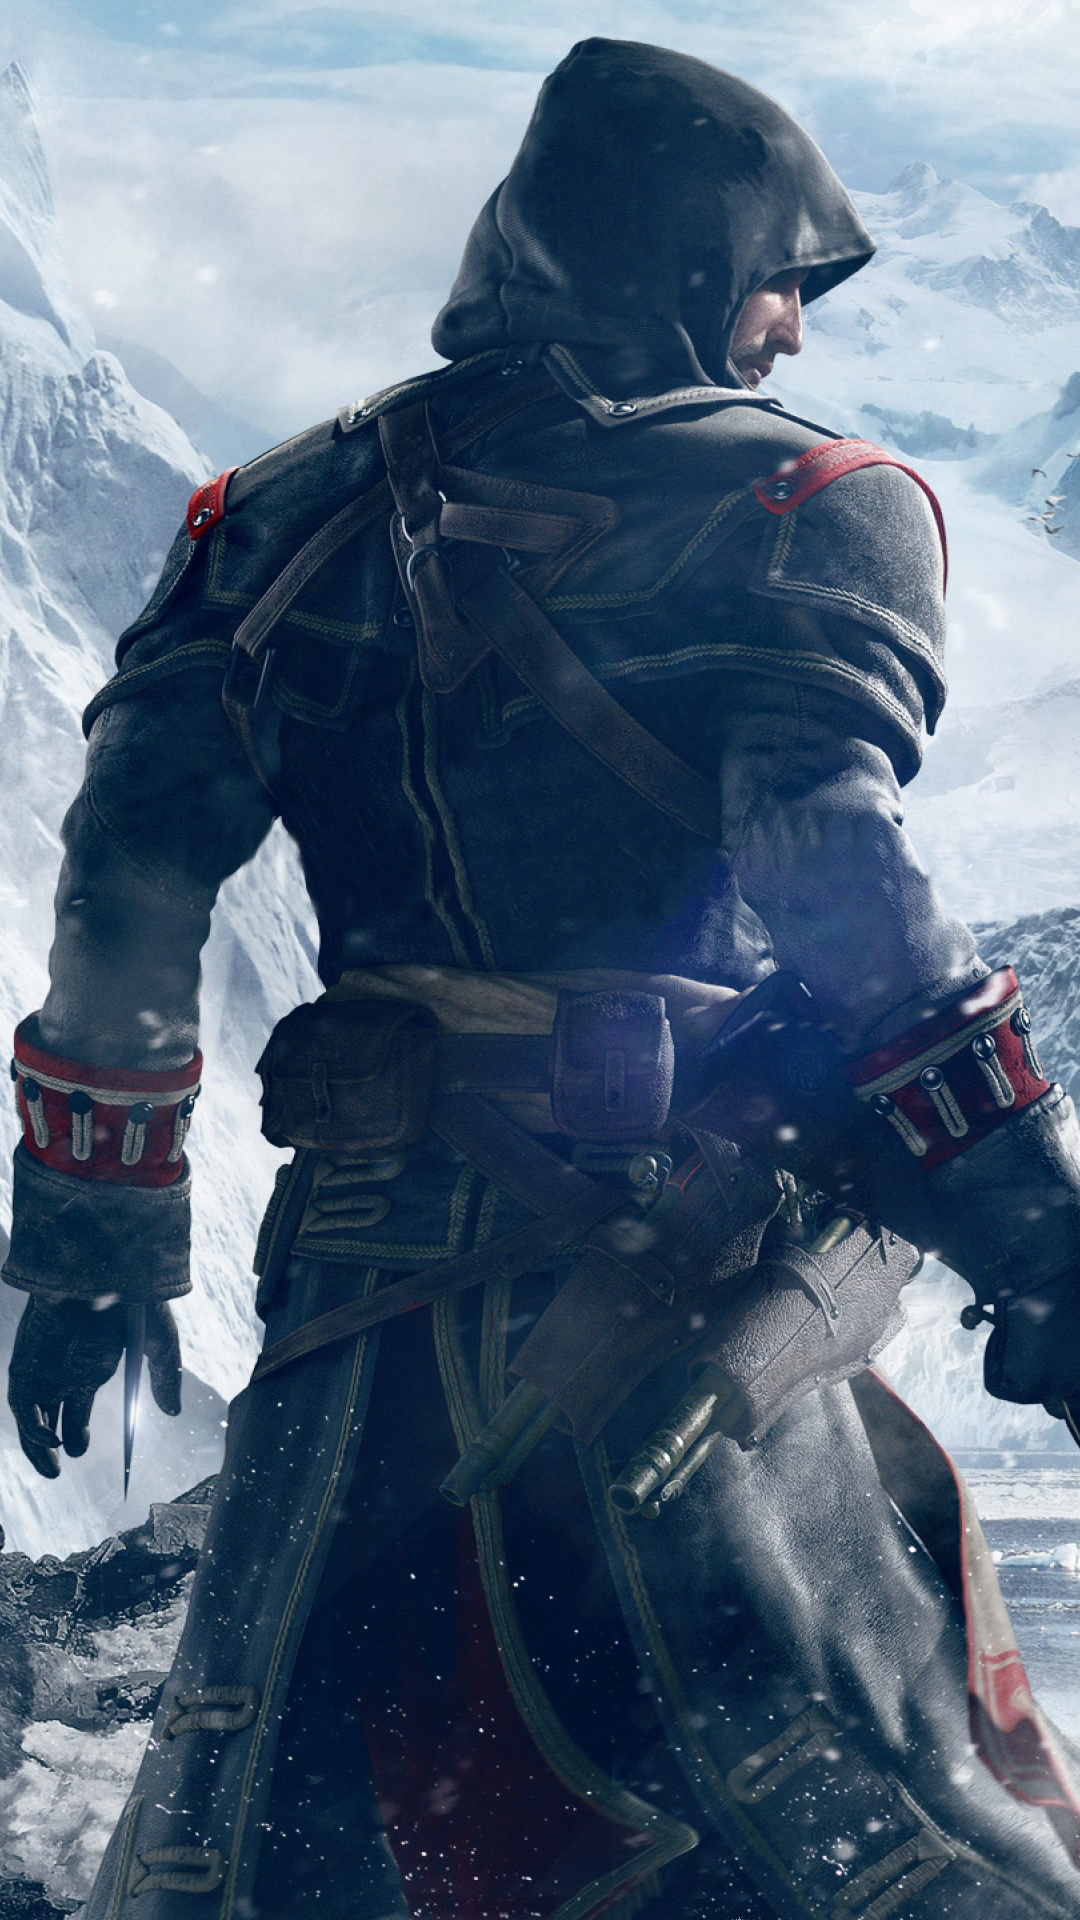 Video Game Assassin S Creed Rogue 1080x1920 Wallpaper Id 244409